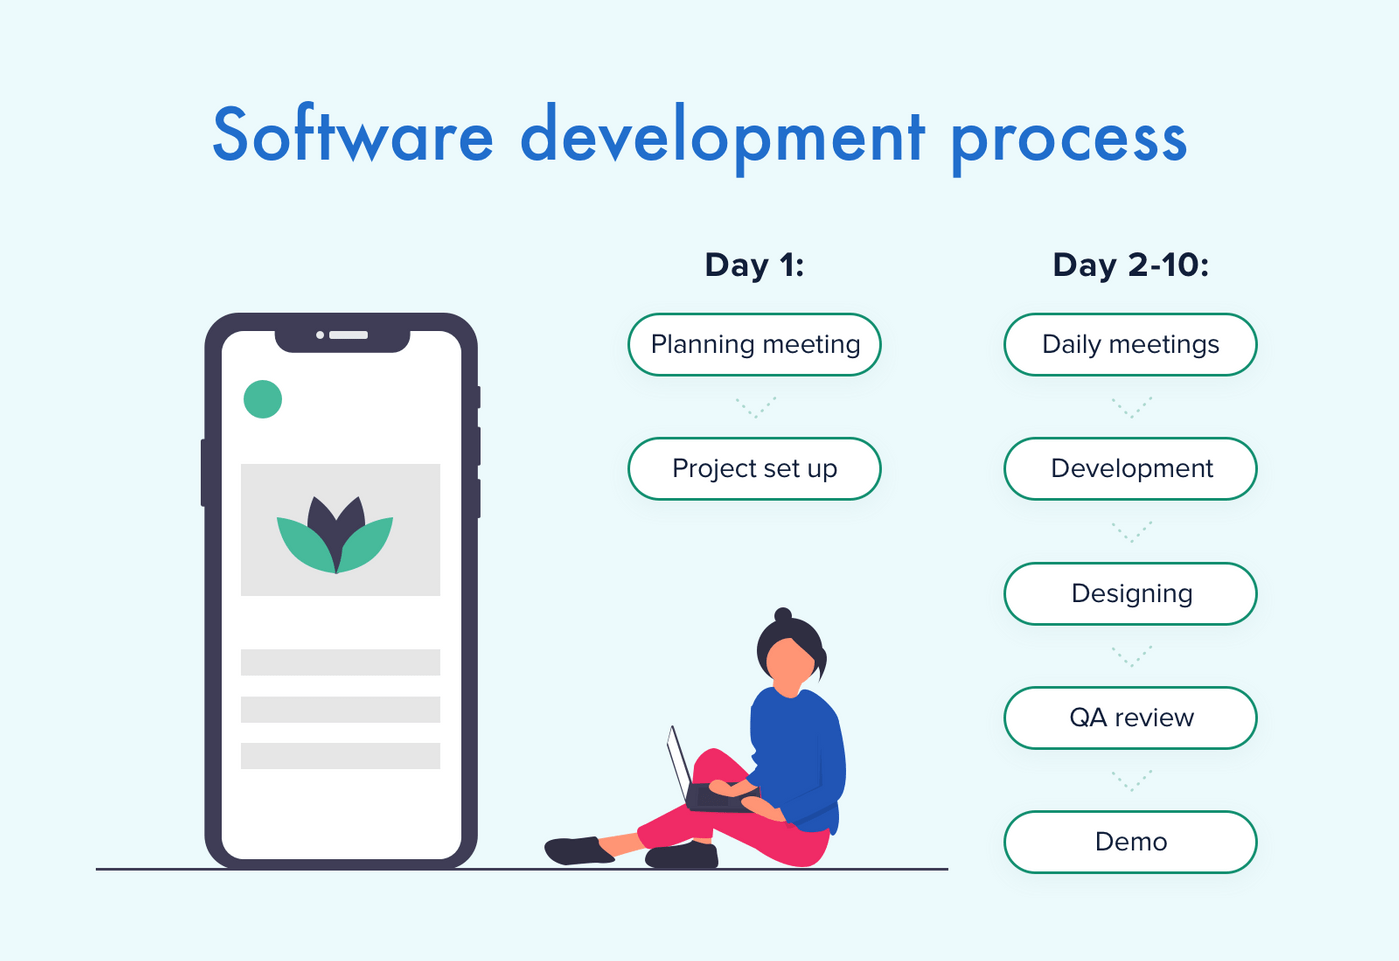 How software development process goes